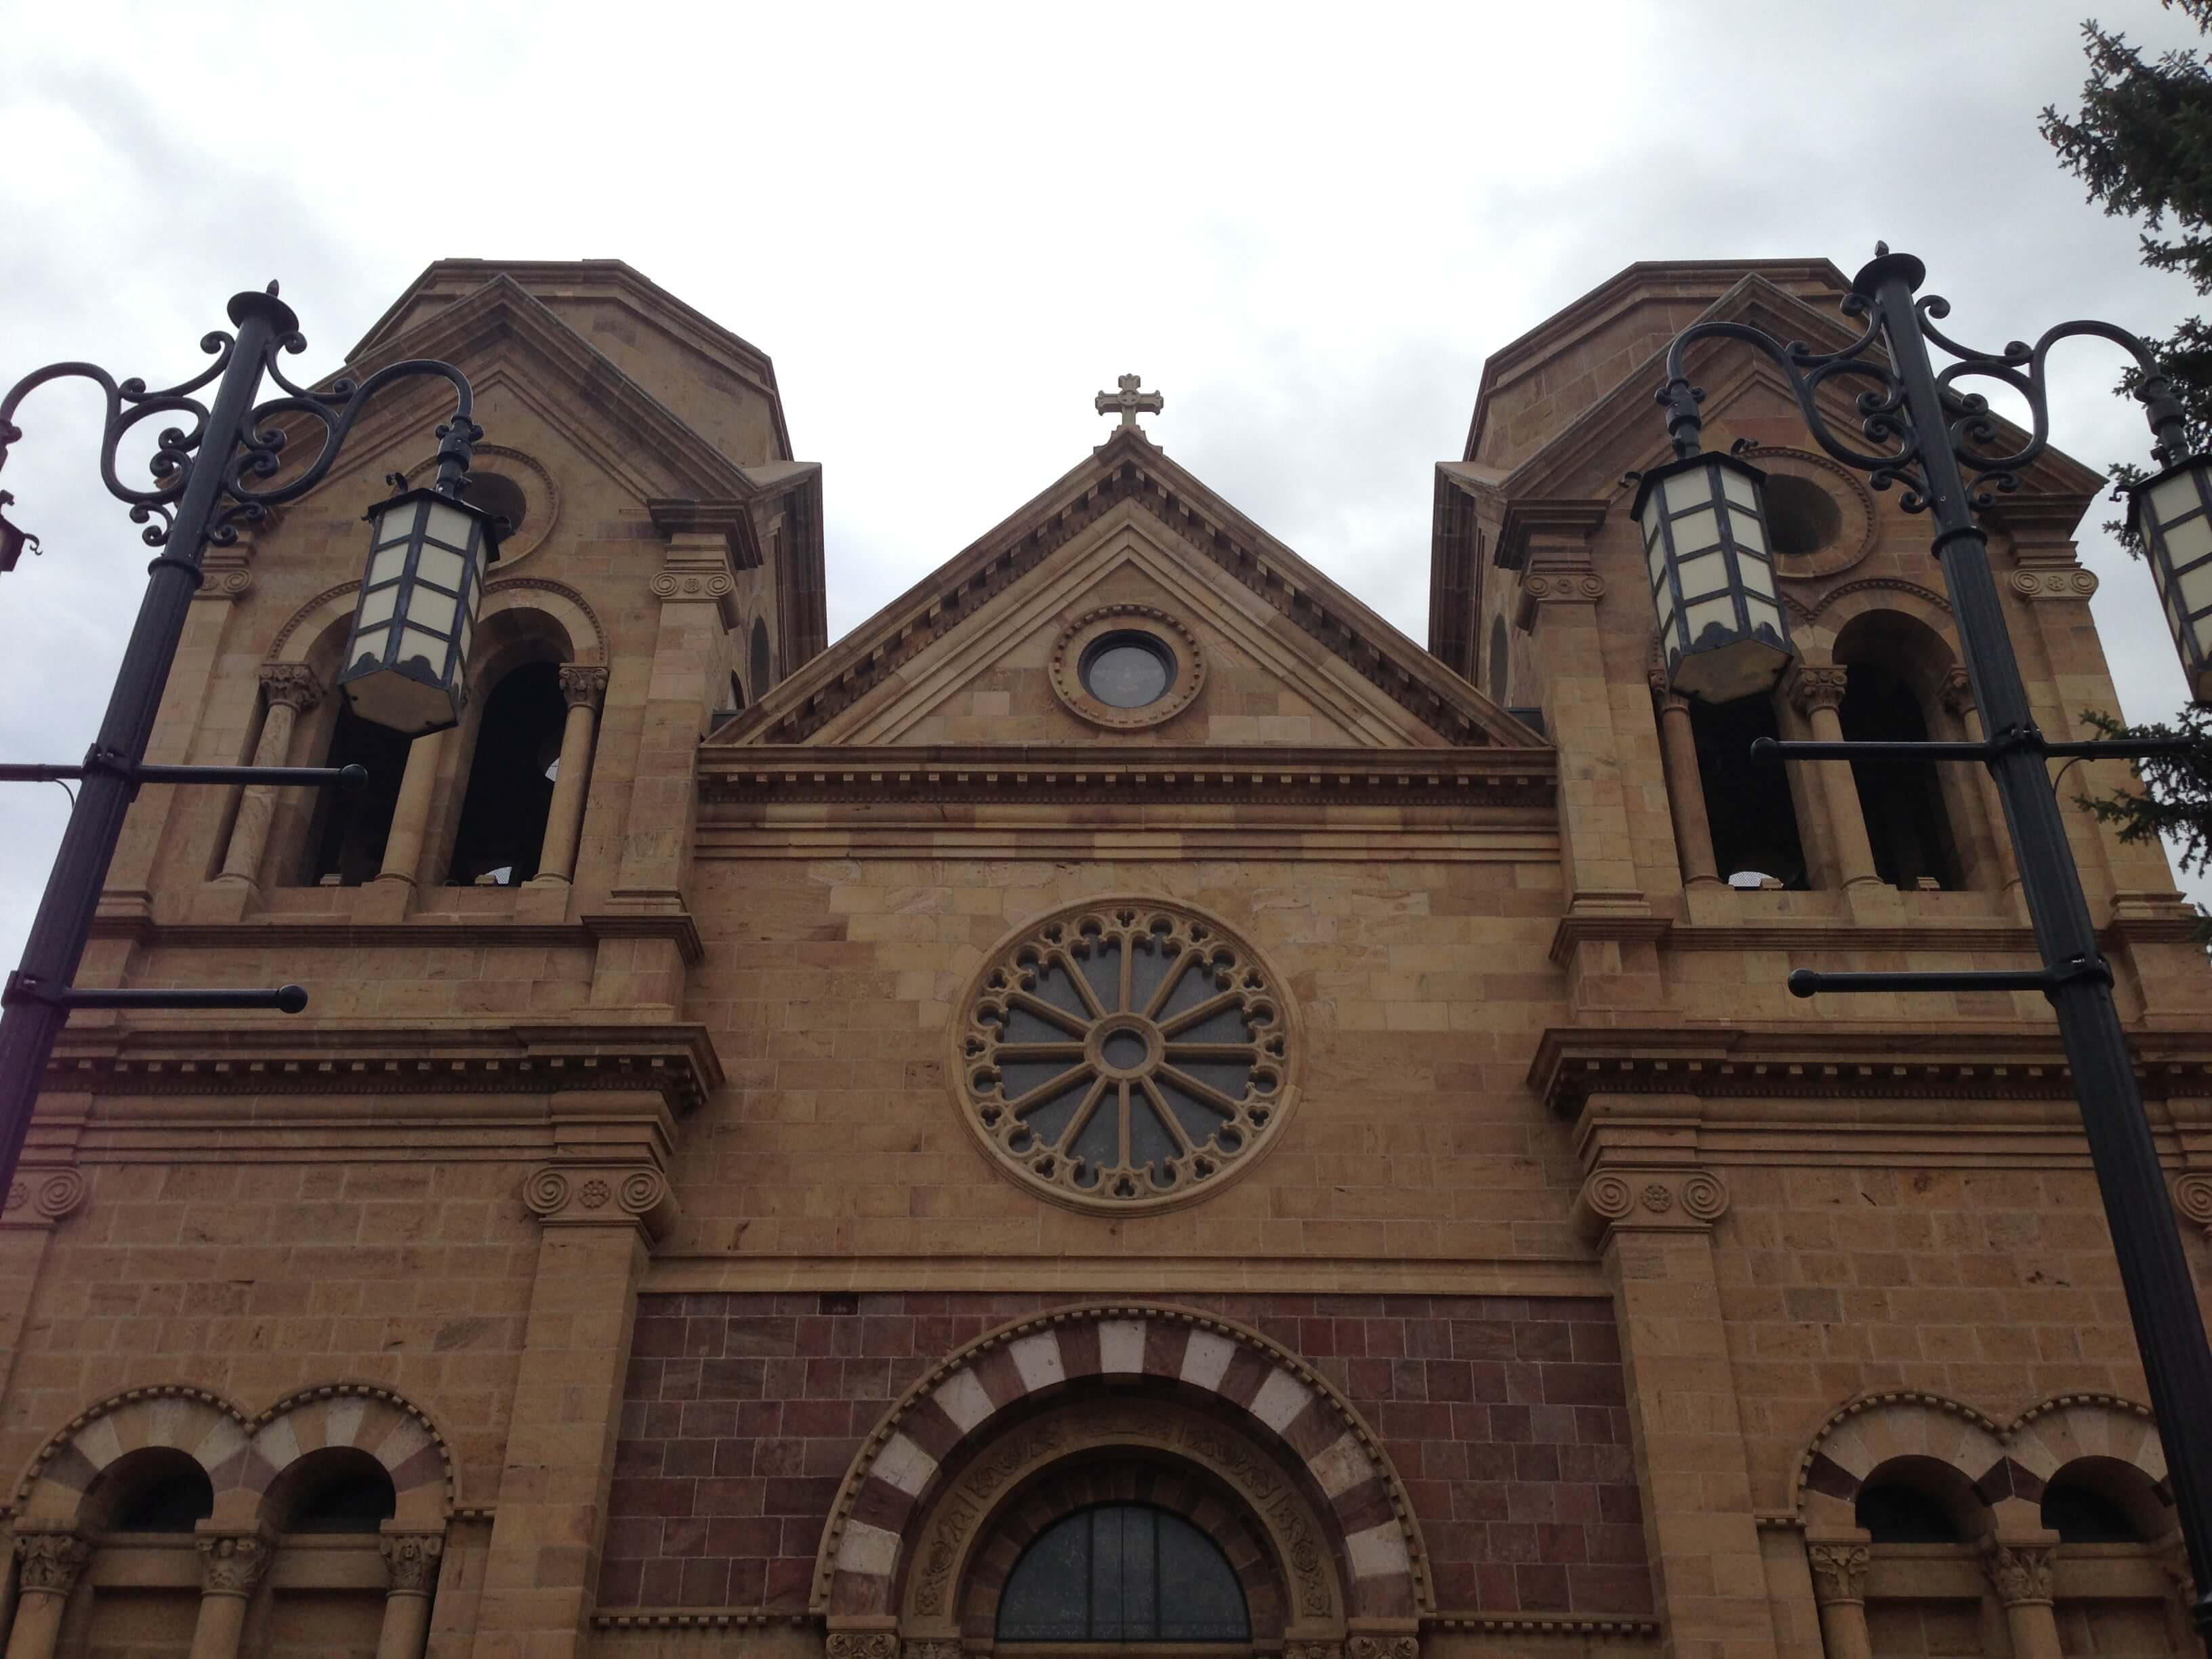 The Cathedral Basilica of Saint Francis